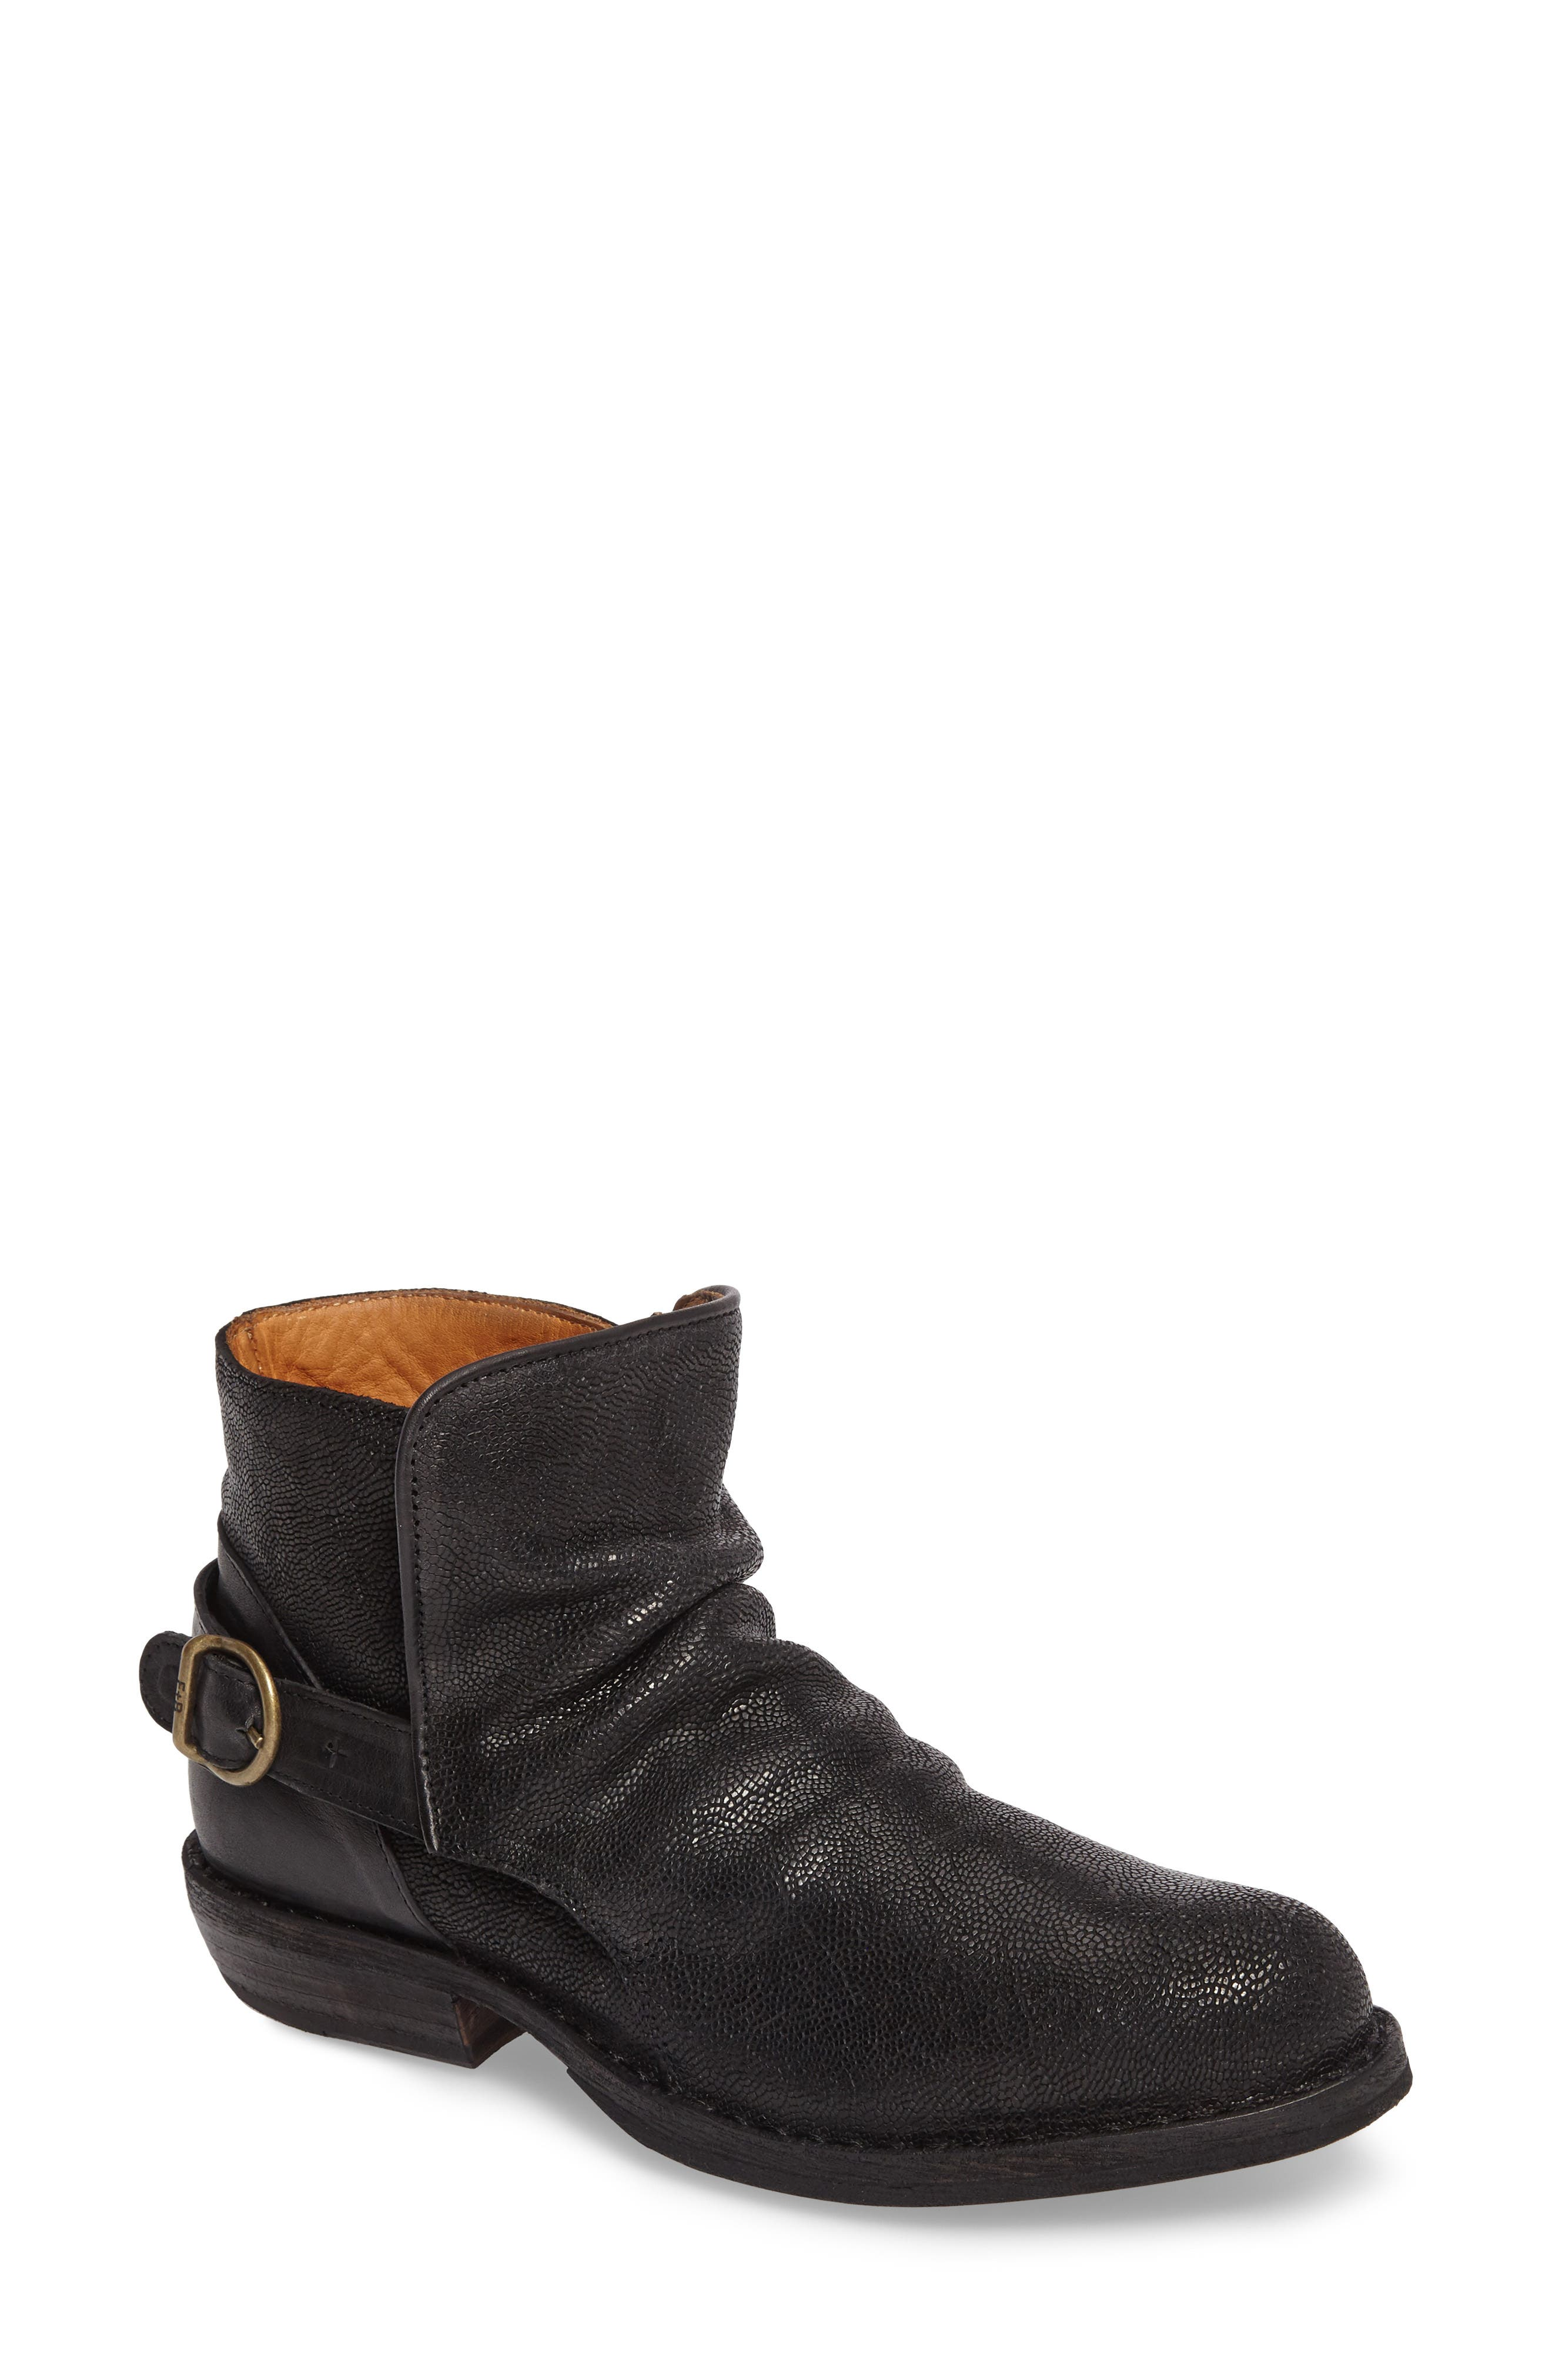 Alternate Image 1 Selected - Fiorentini + Baker 'Carol' Ankle Boot (Women)